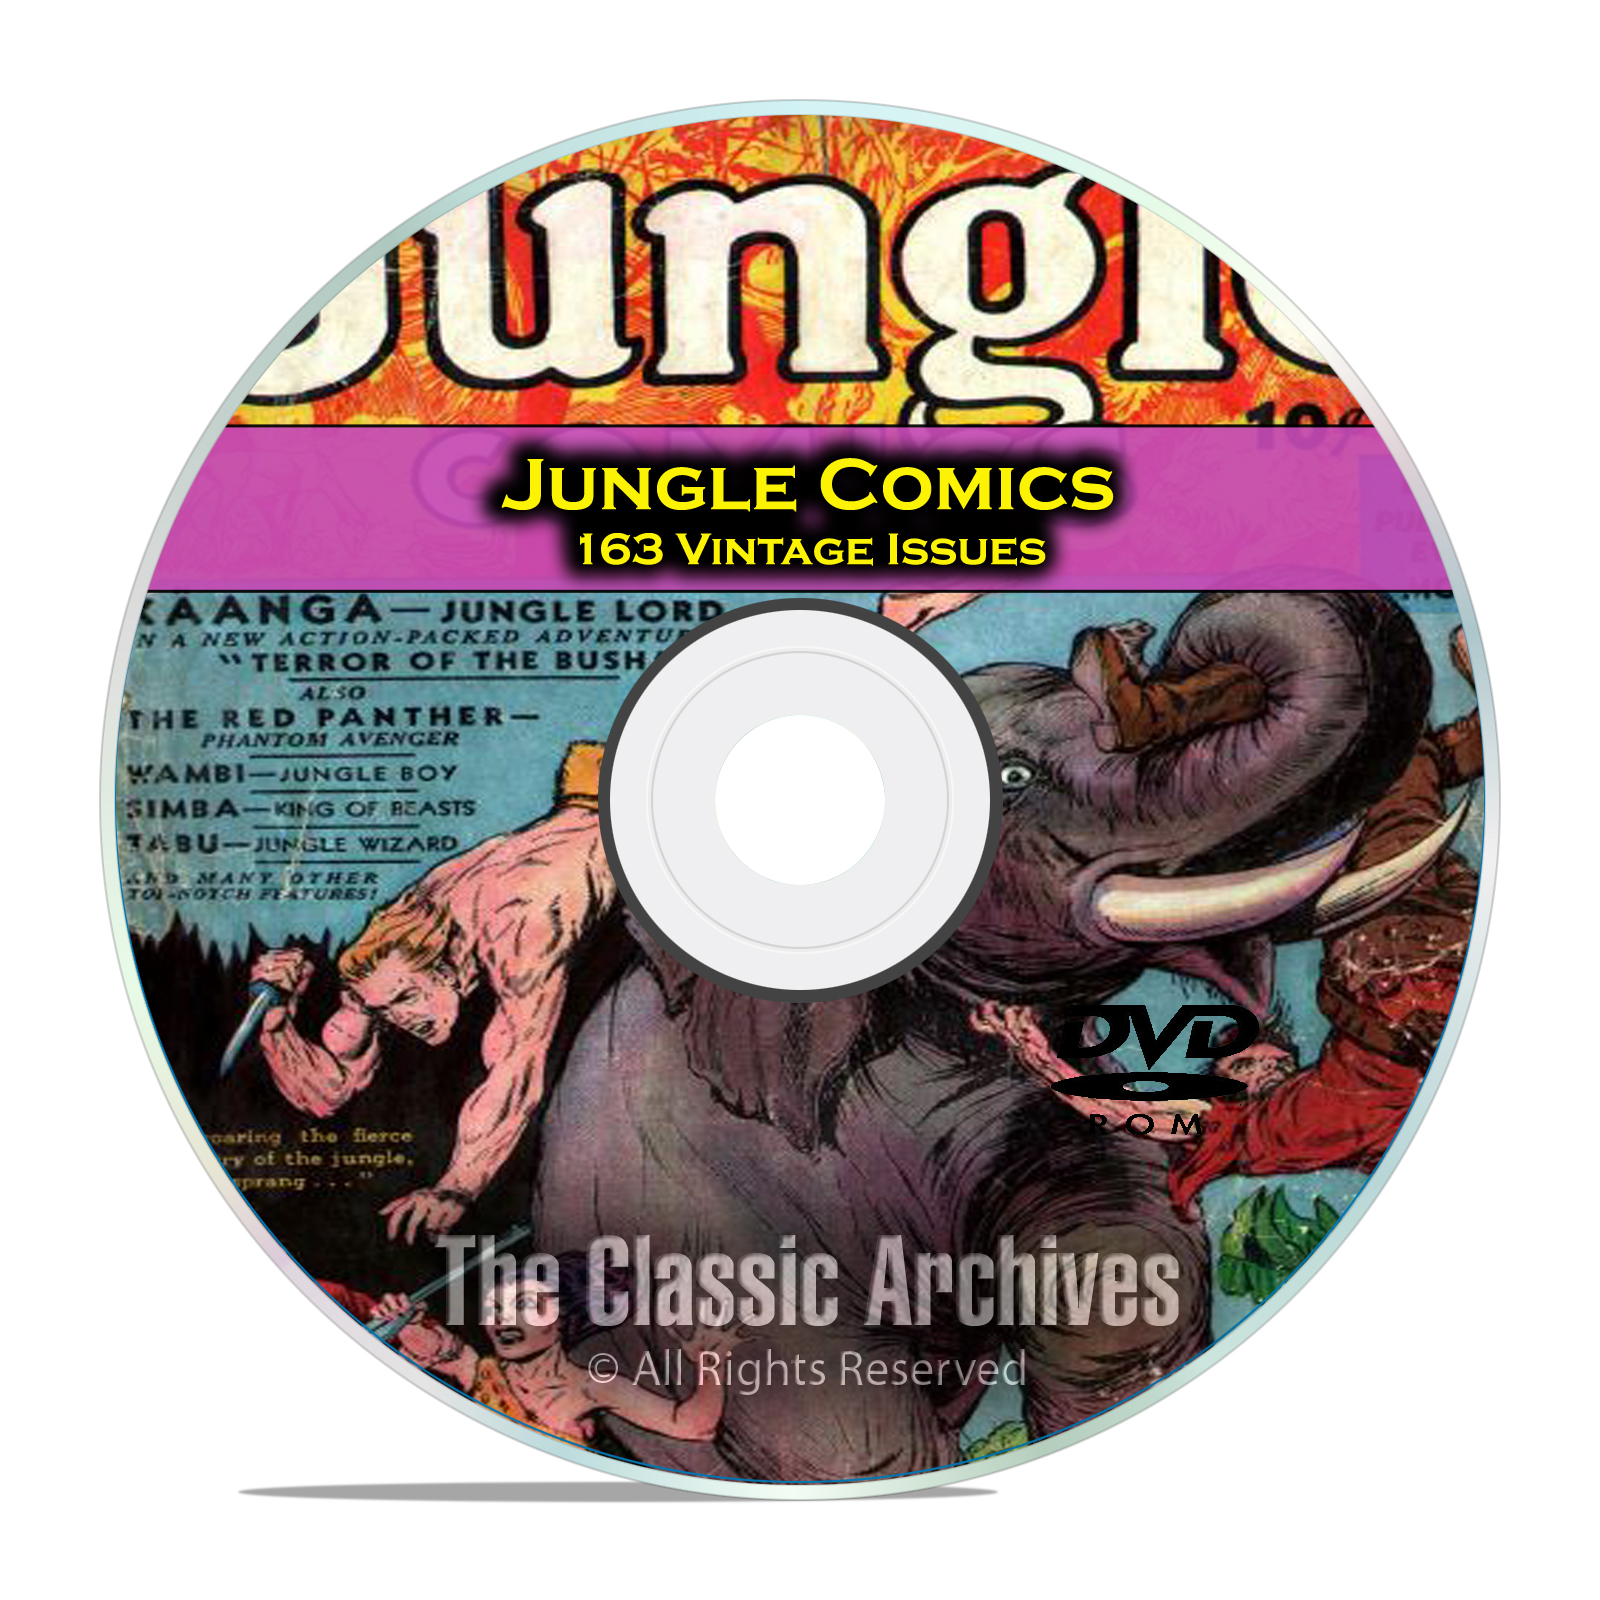 Jungle Comics, Fiction House, Full Run, 163 Issues, Golden Age Comics DVD - Click Image to Close